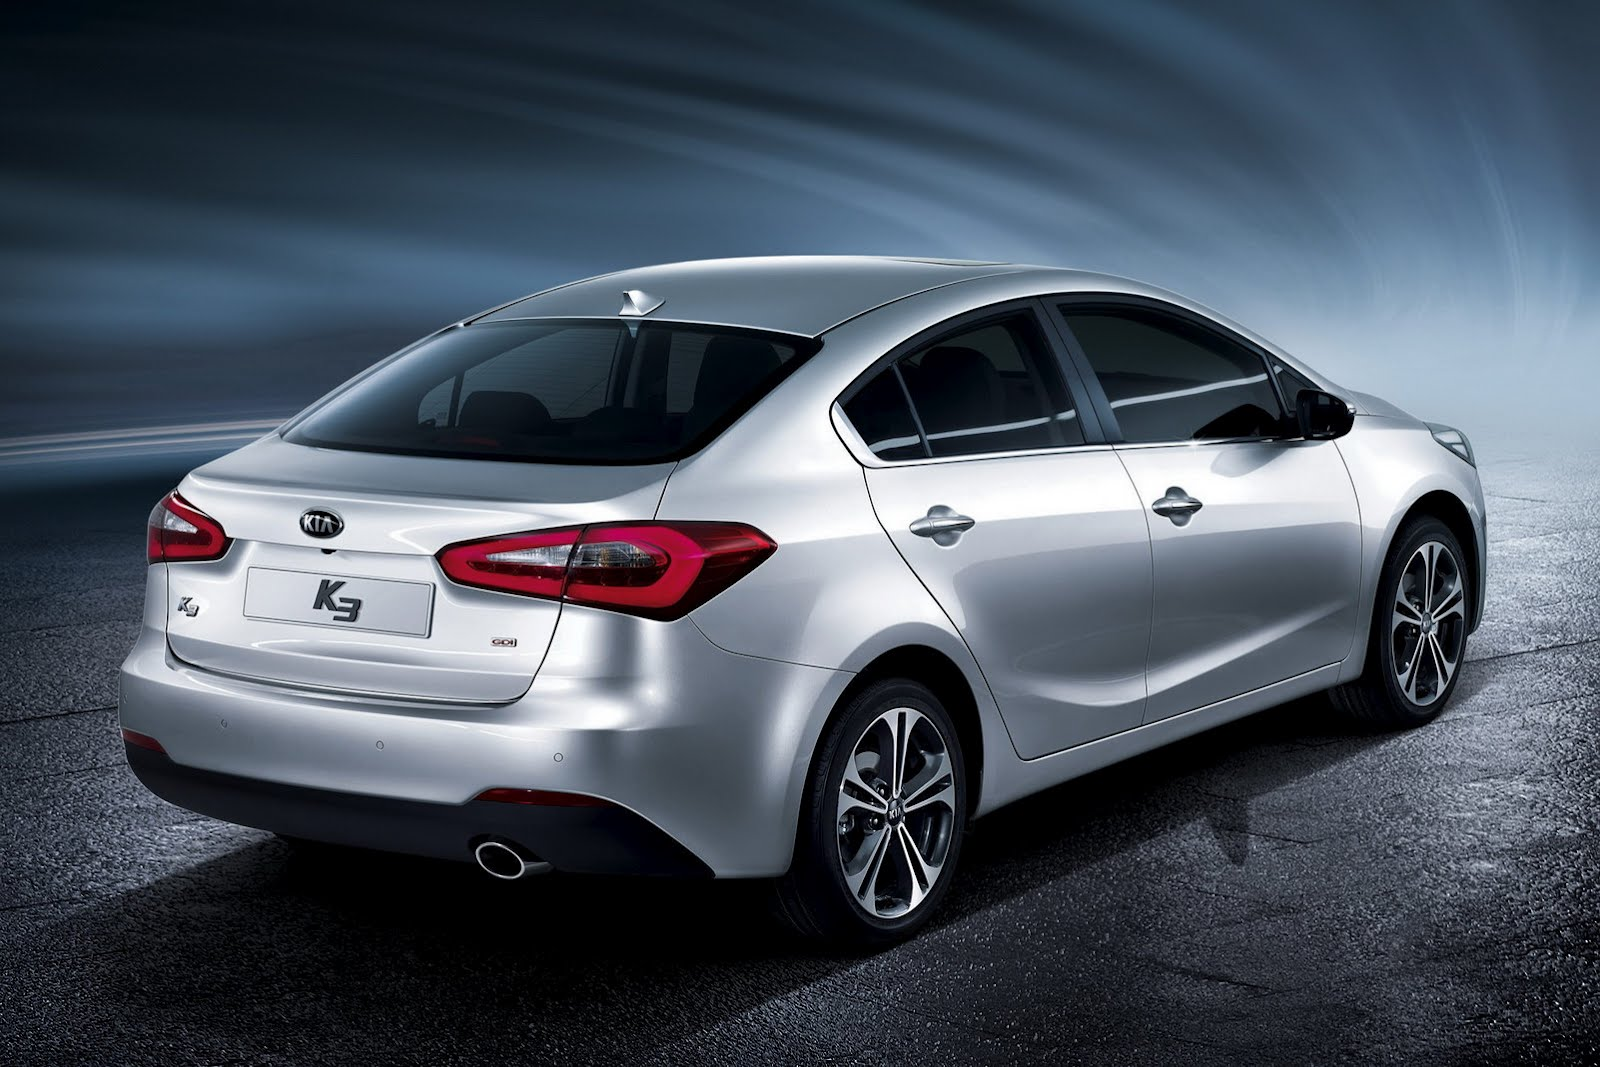 Kia K3 Cerato Forte Blows the Box Open Compact Sedan HD quality defination Wallpaper Gallery Free